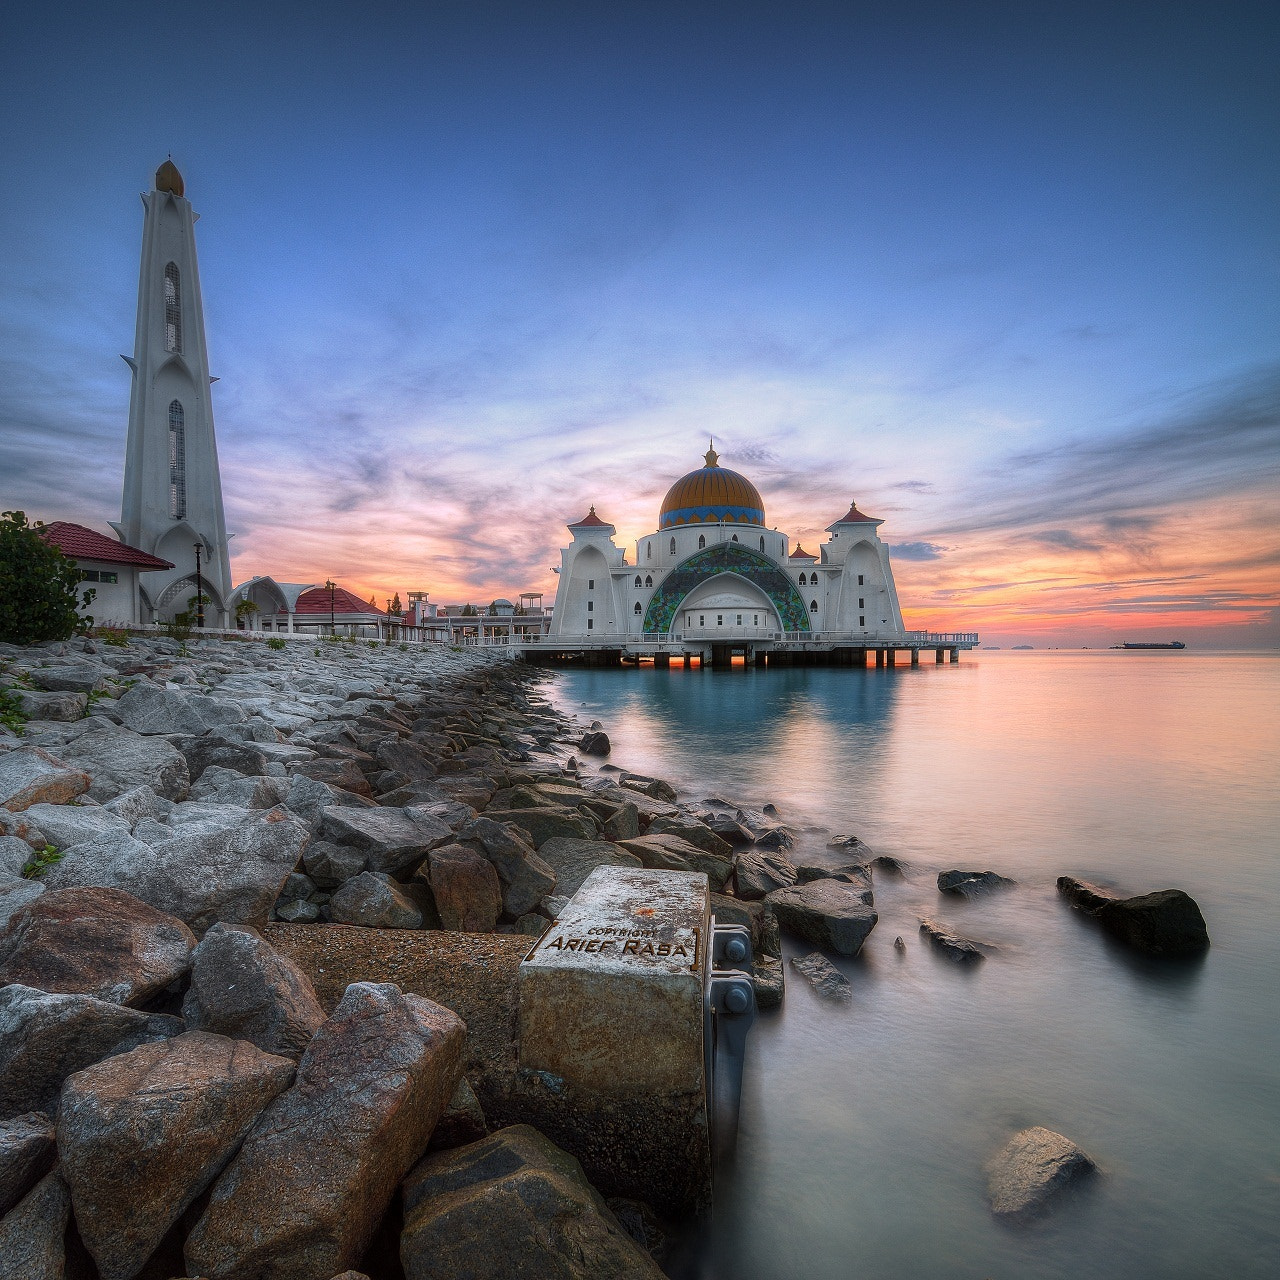 Photograph Selat Mosque In Vertorama by Kamrul Arifin on 500px